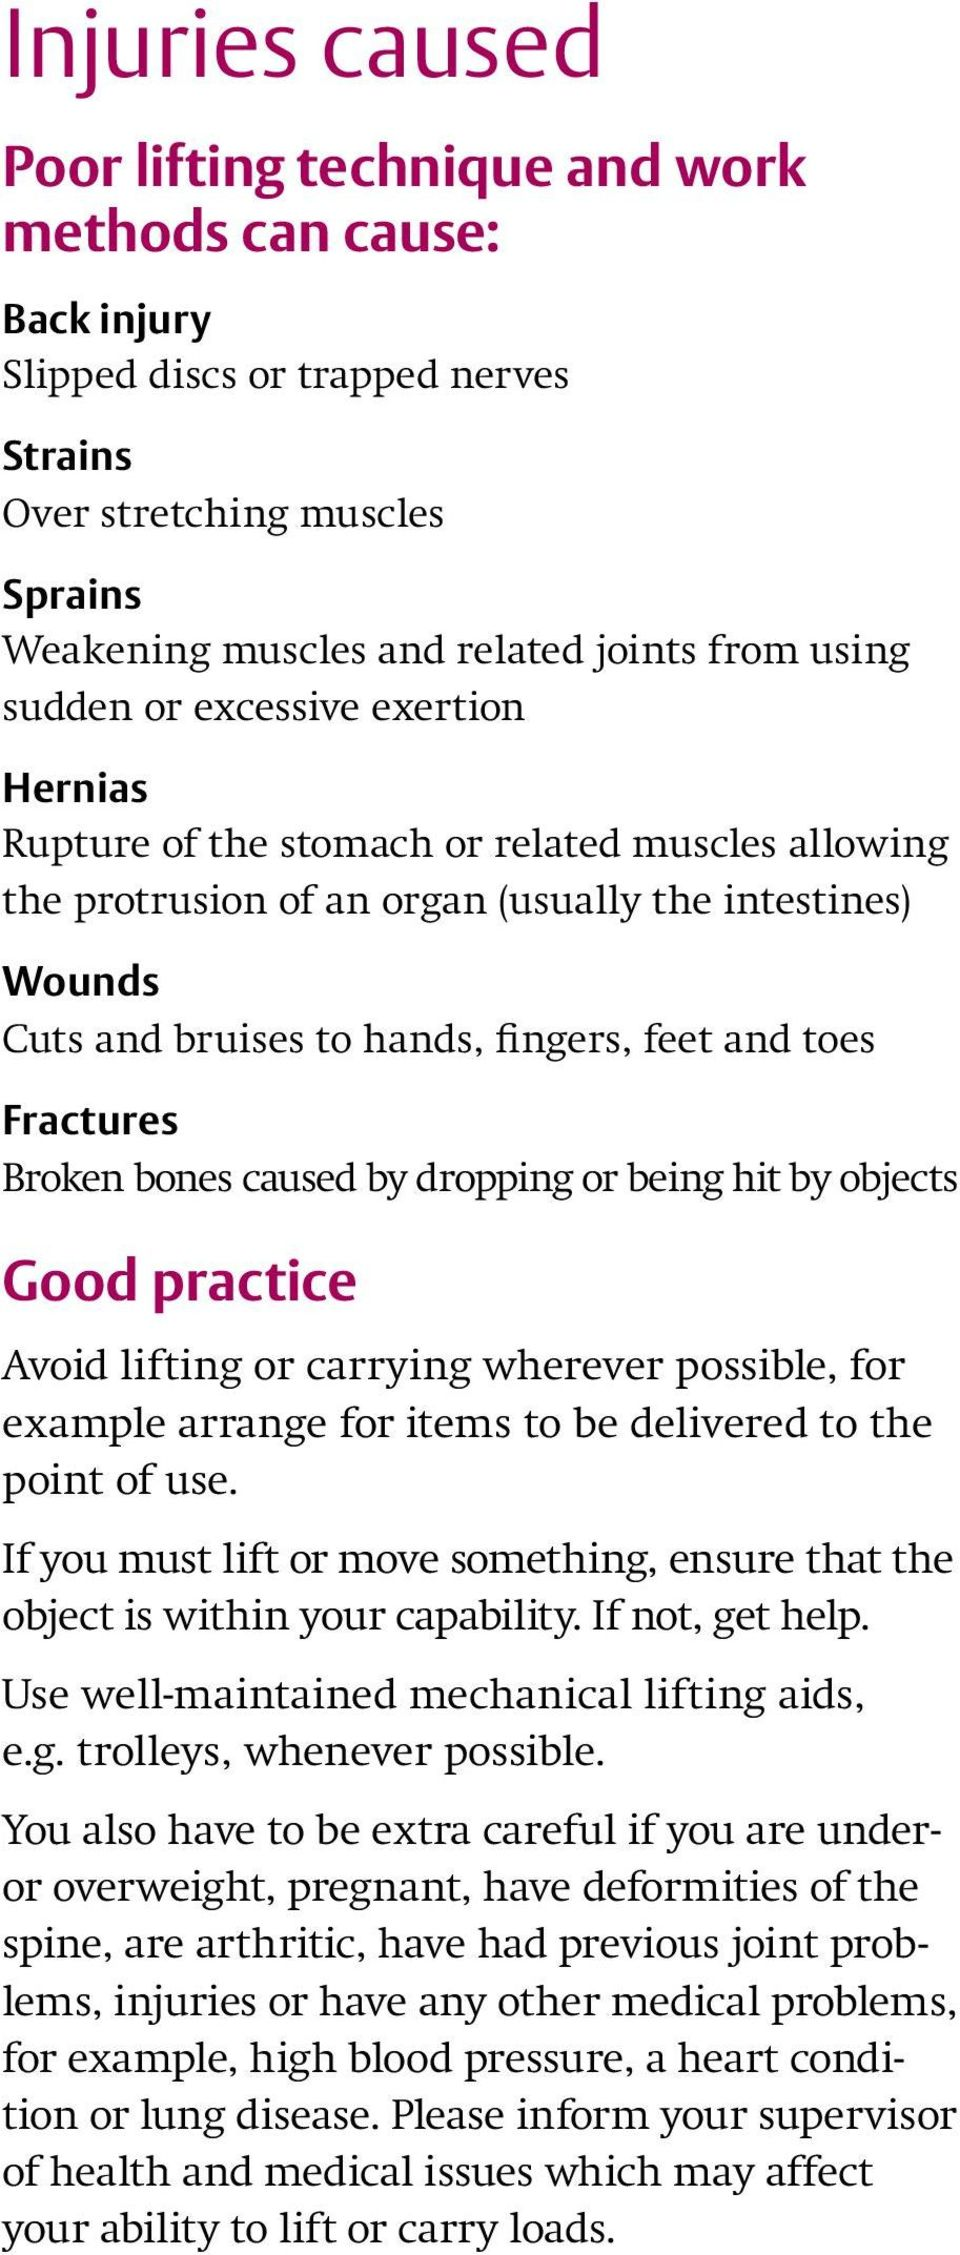 Fractures Broken bones caused by dropping or being hit by objects Good practice Avoid lifting or carrying wherever possible, for example arrange for items to be delivered to the point of use.